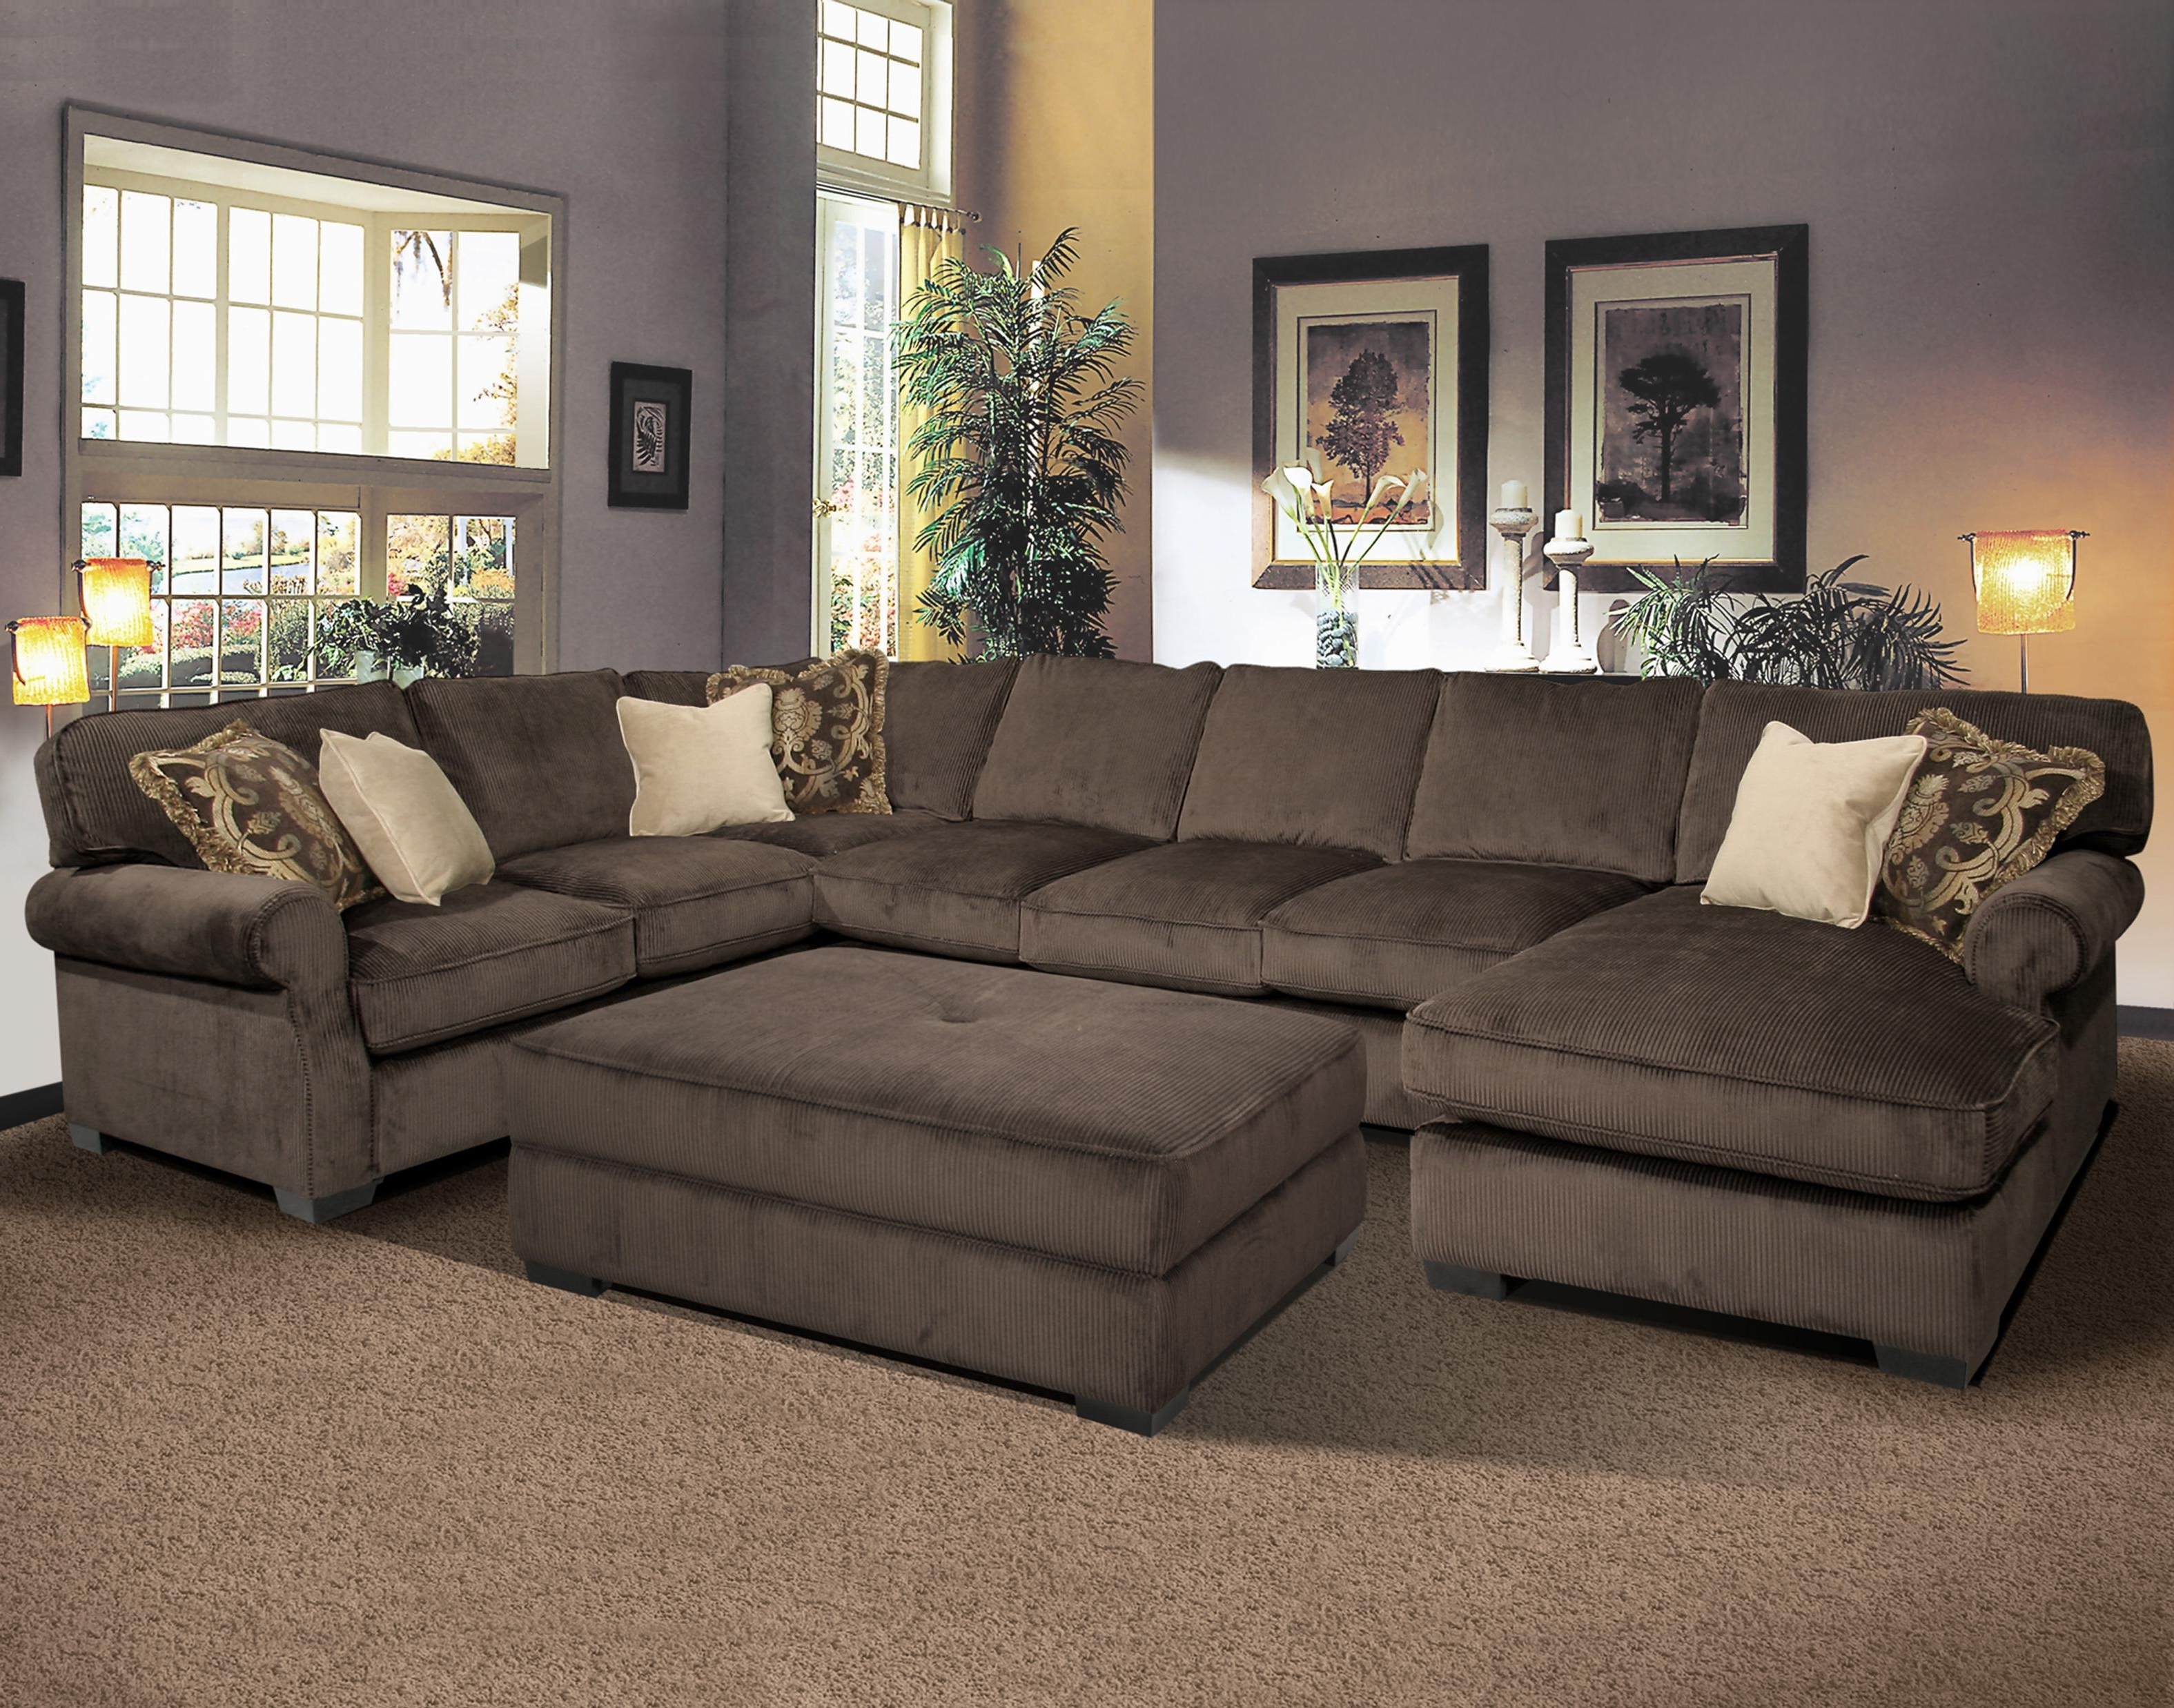 Free Quality Sectional Sofas #2021 With Regard To Well Known Quality Sectional Sofas (View 8 of 15)